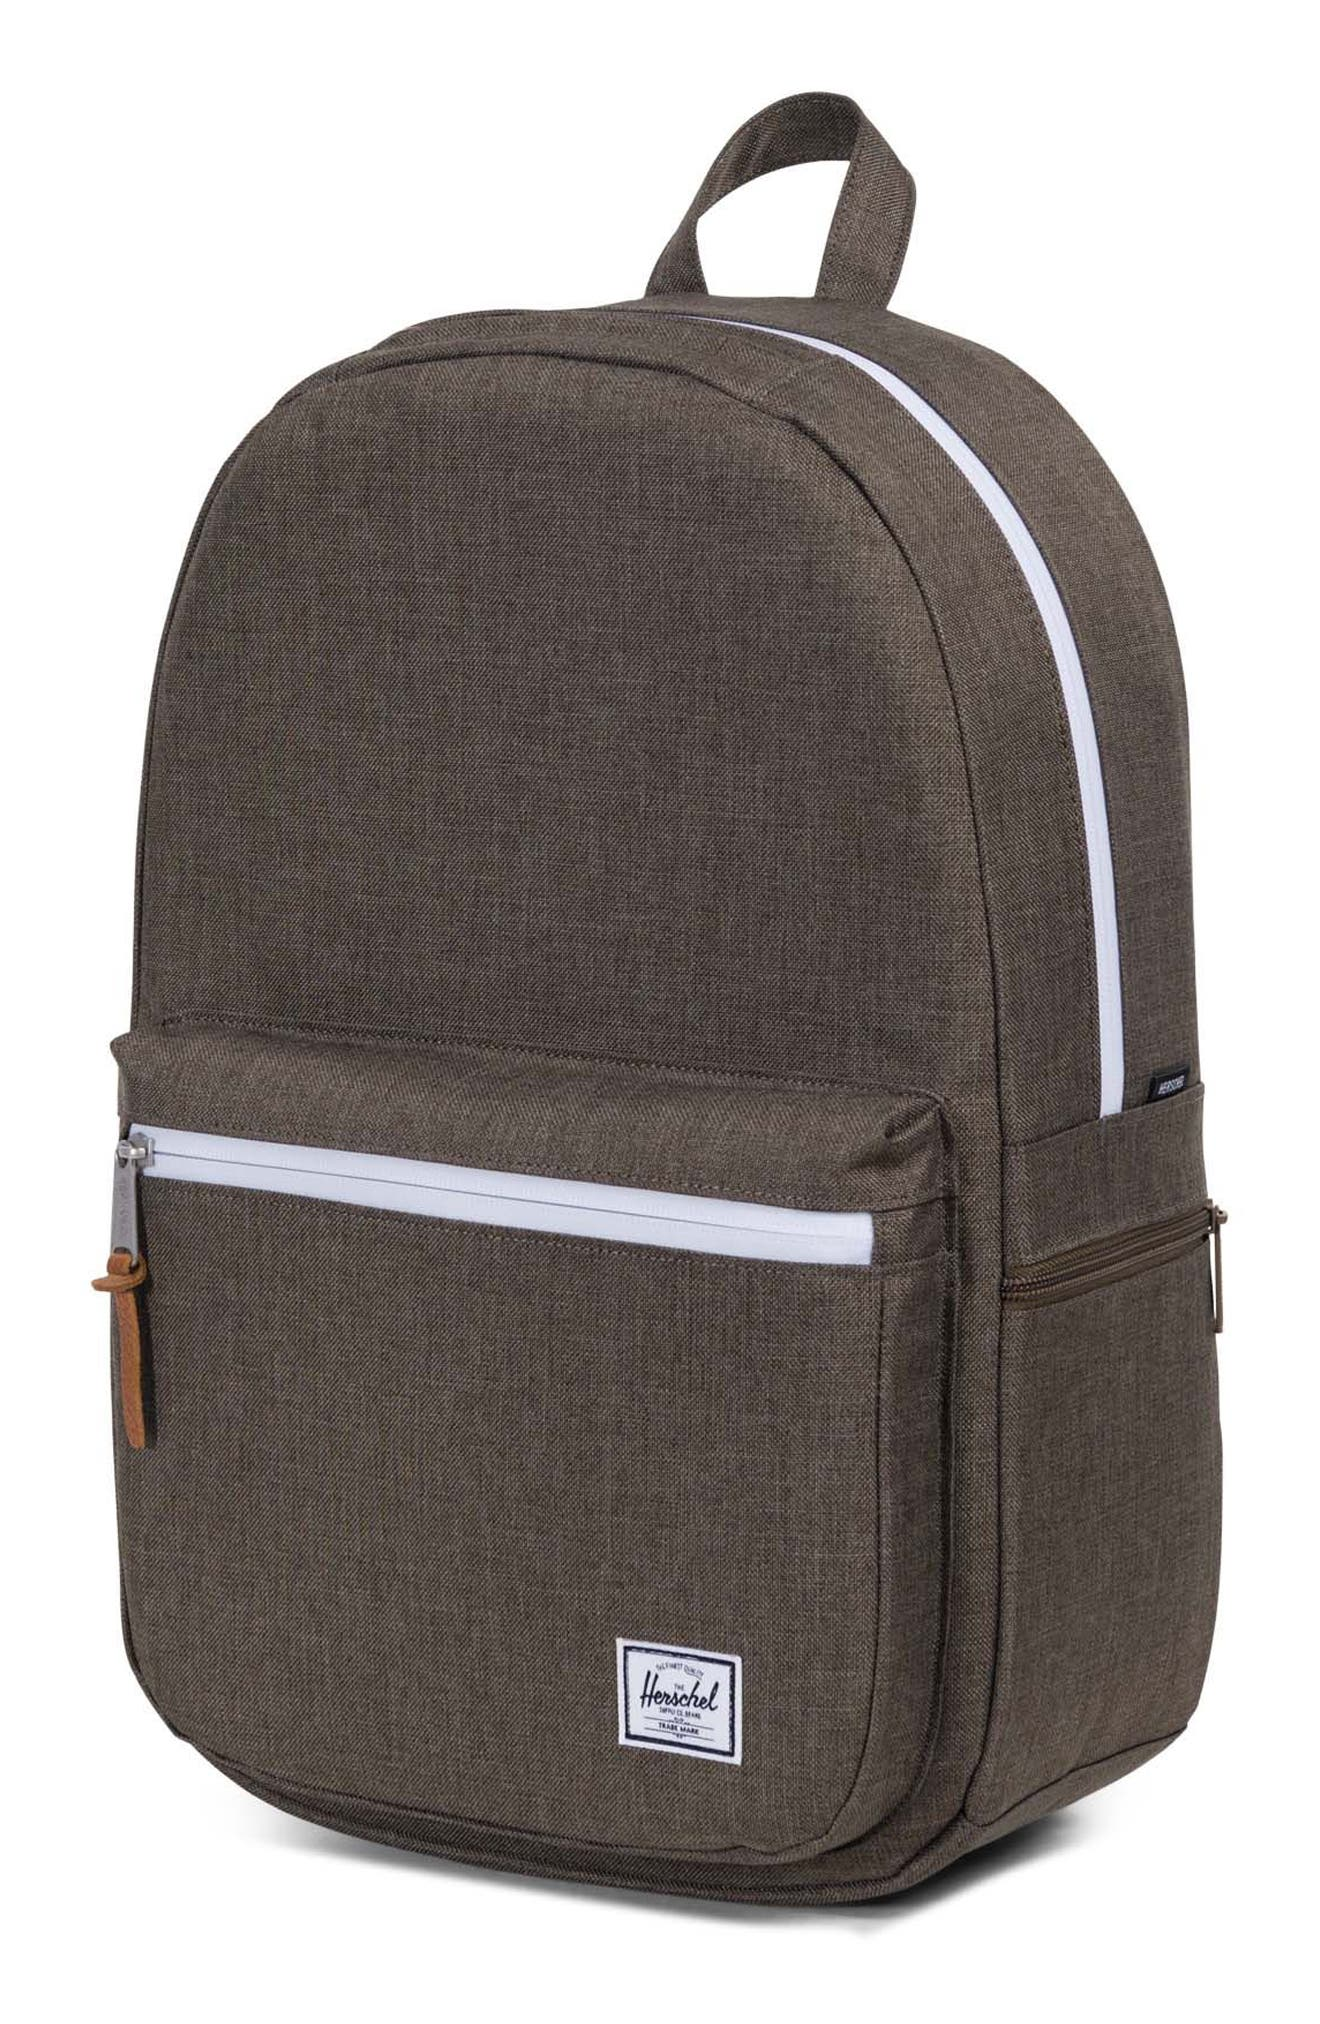 Harrison Backpack,                             Alternate thumbnail 4, color,                             Canteen Crosshatch